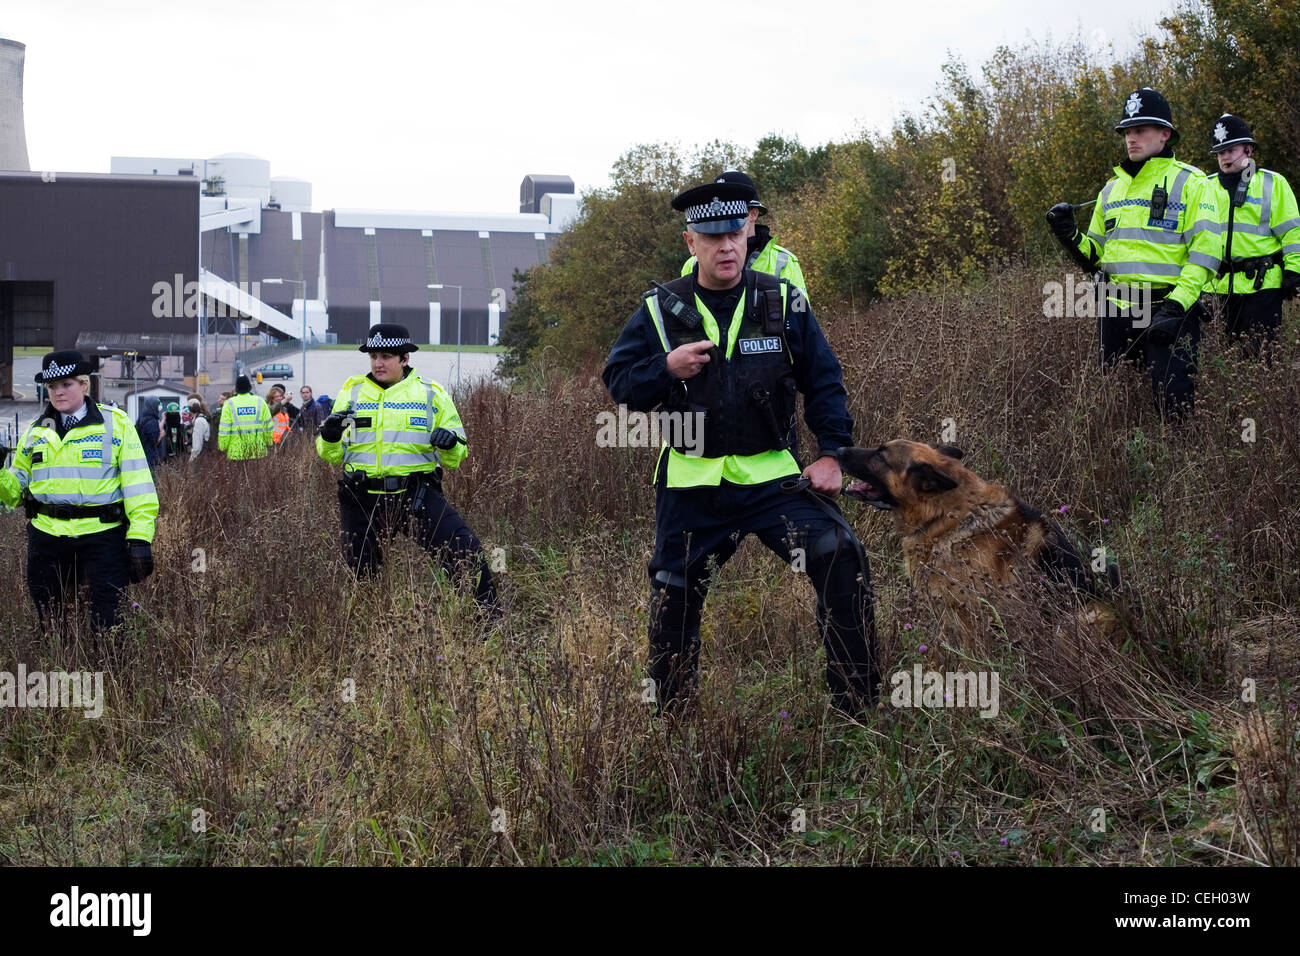 Police Officer with dog forming a kettle at Ratcliffe on Soar Power Station Climate Swoop Protest. - Stock Image